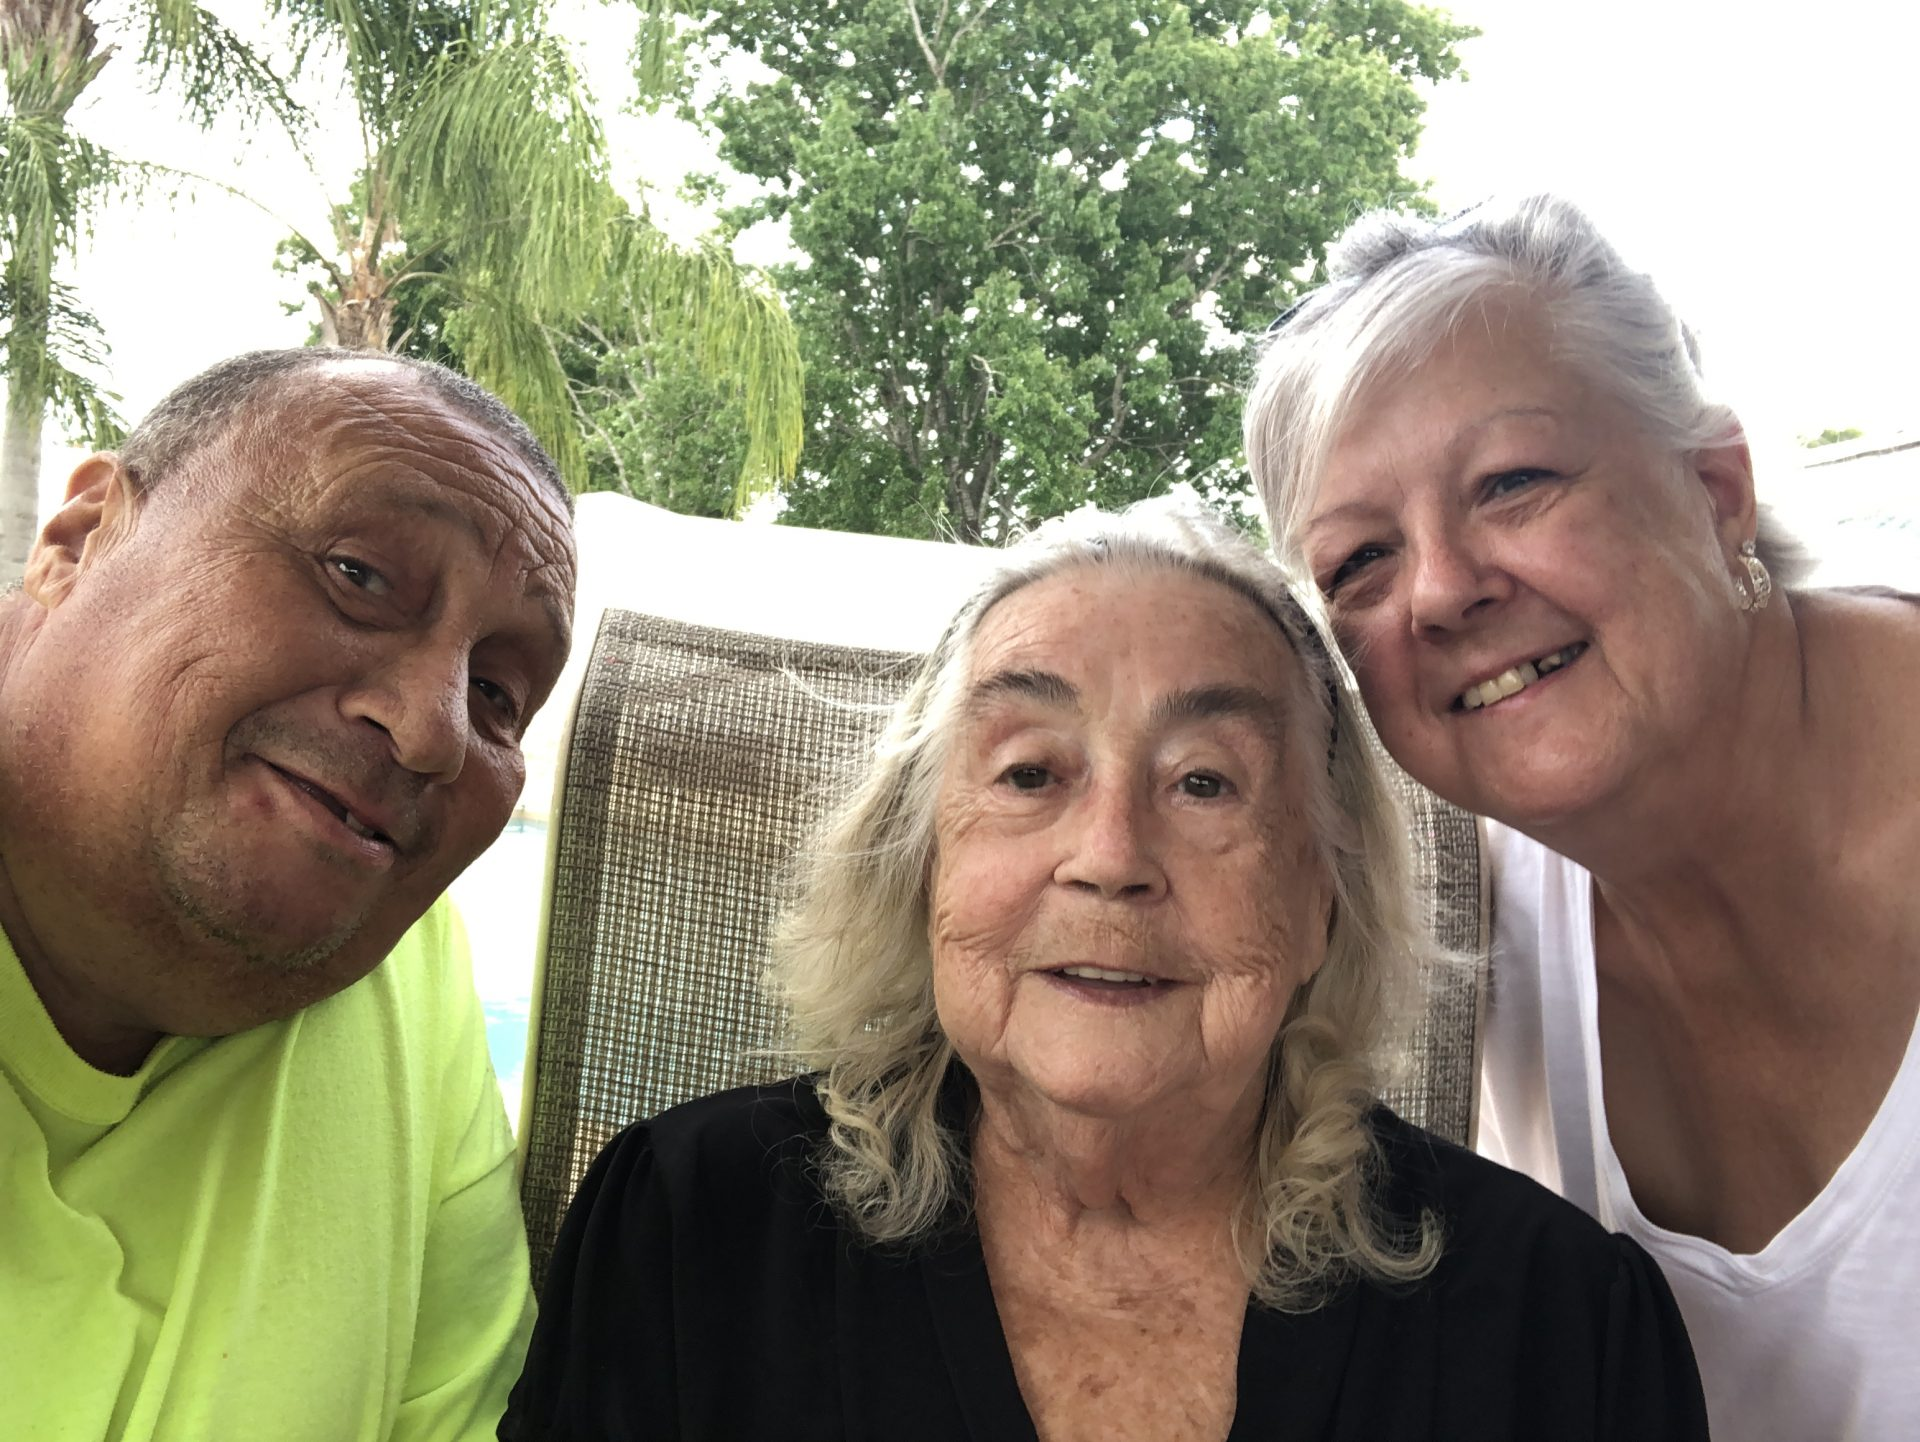 The three musketeers. Mom was so fortunate thank you decided to be with us at the end. It may have been only for a short time but it was amazing